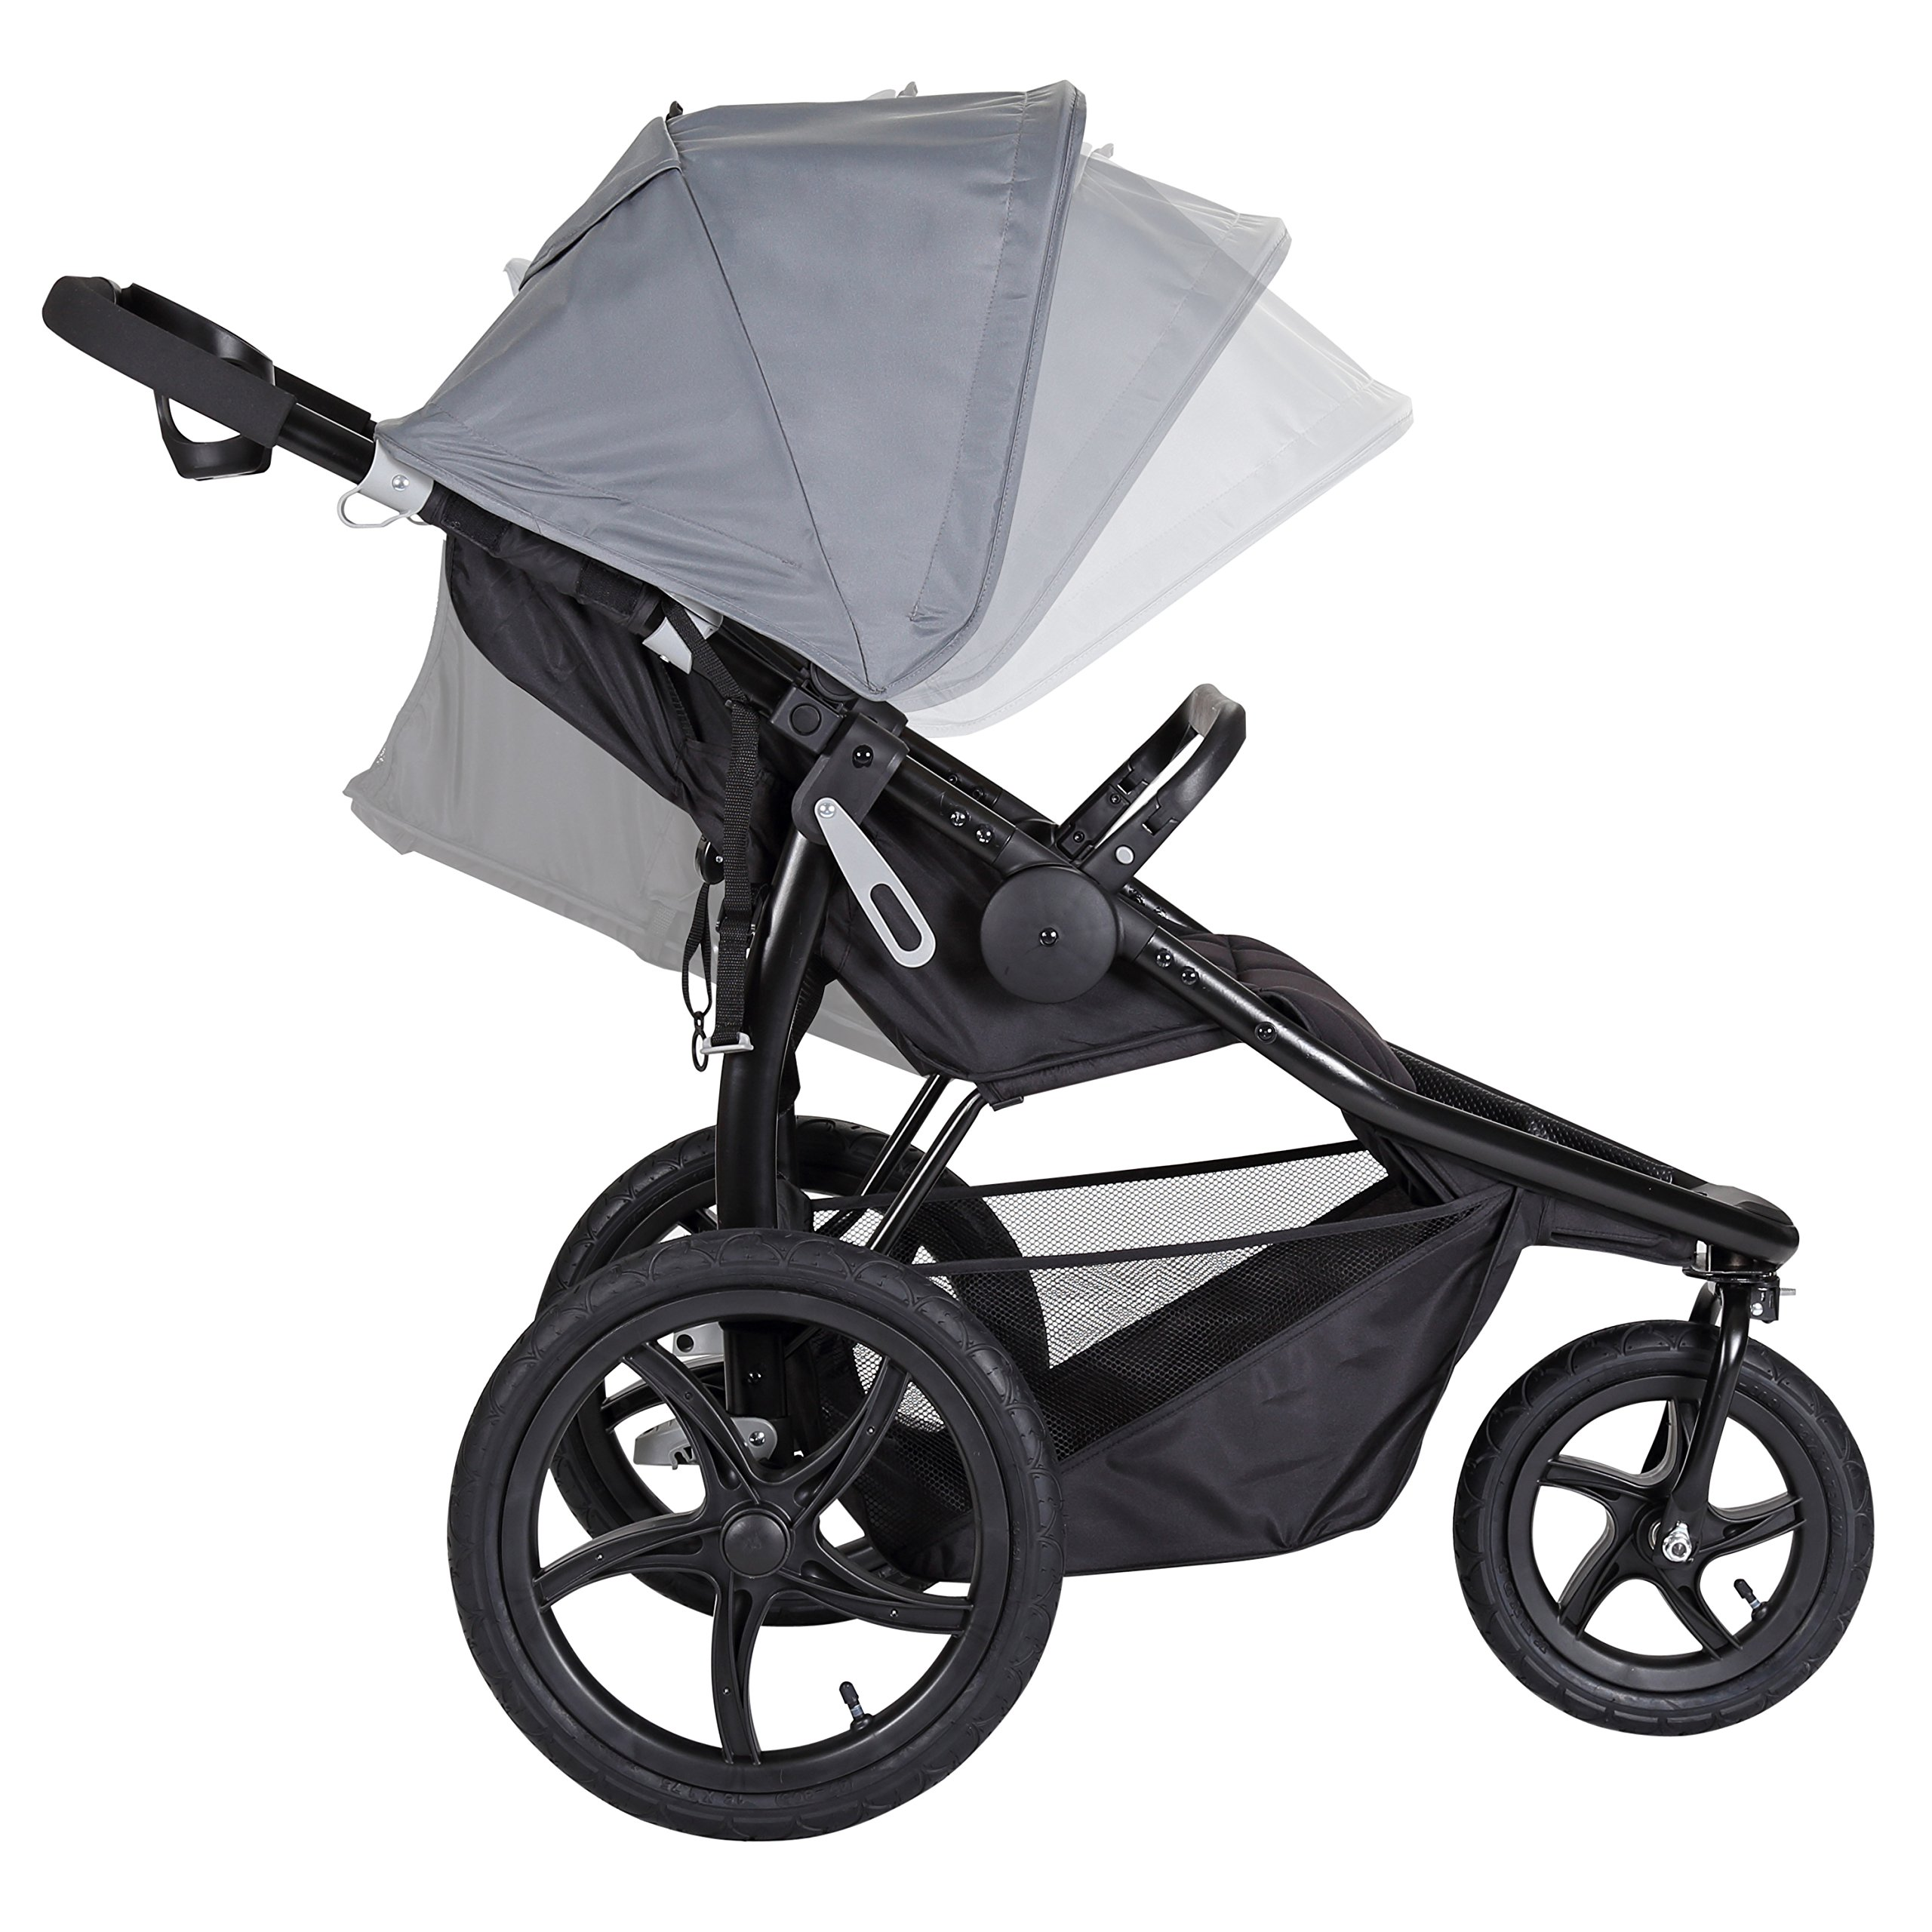 Baby Trend Stealth Jogging Stroller, Alloy by Baby Trend (Image #2)